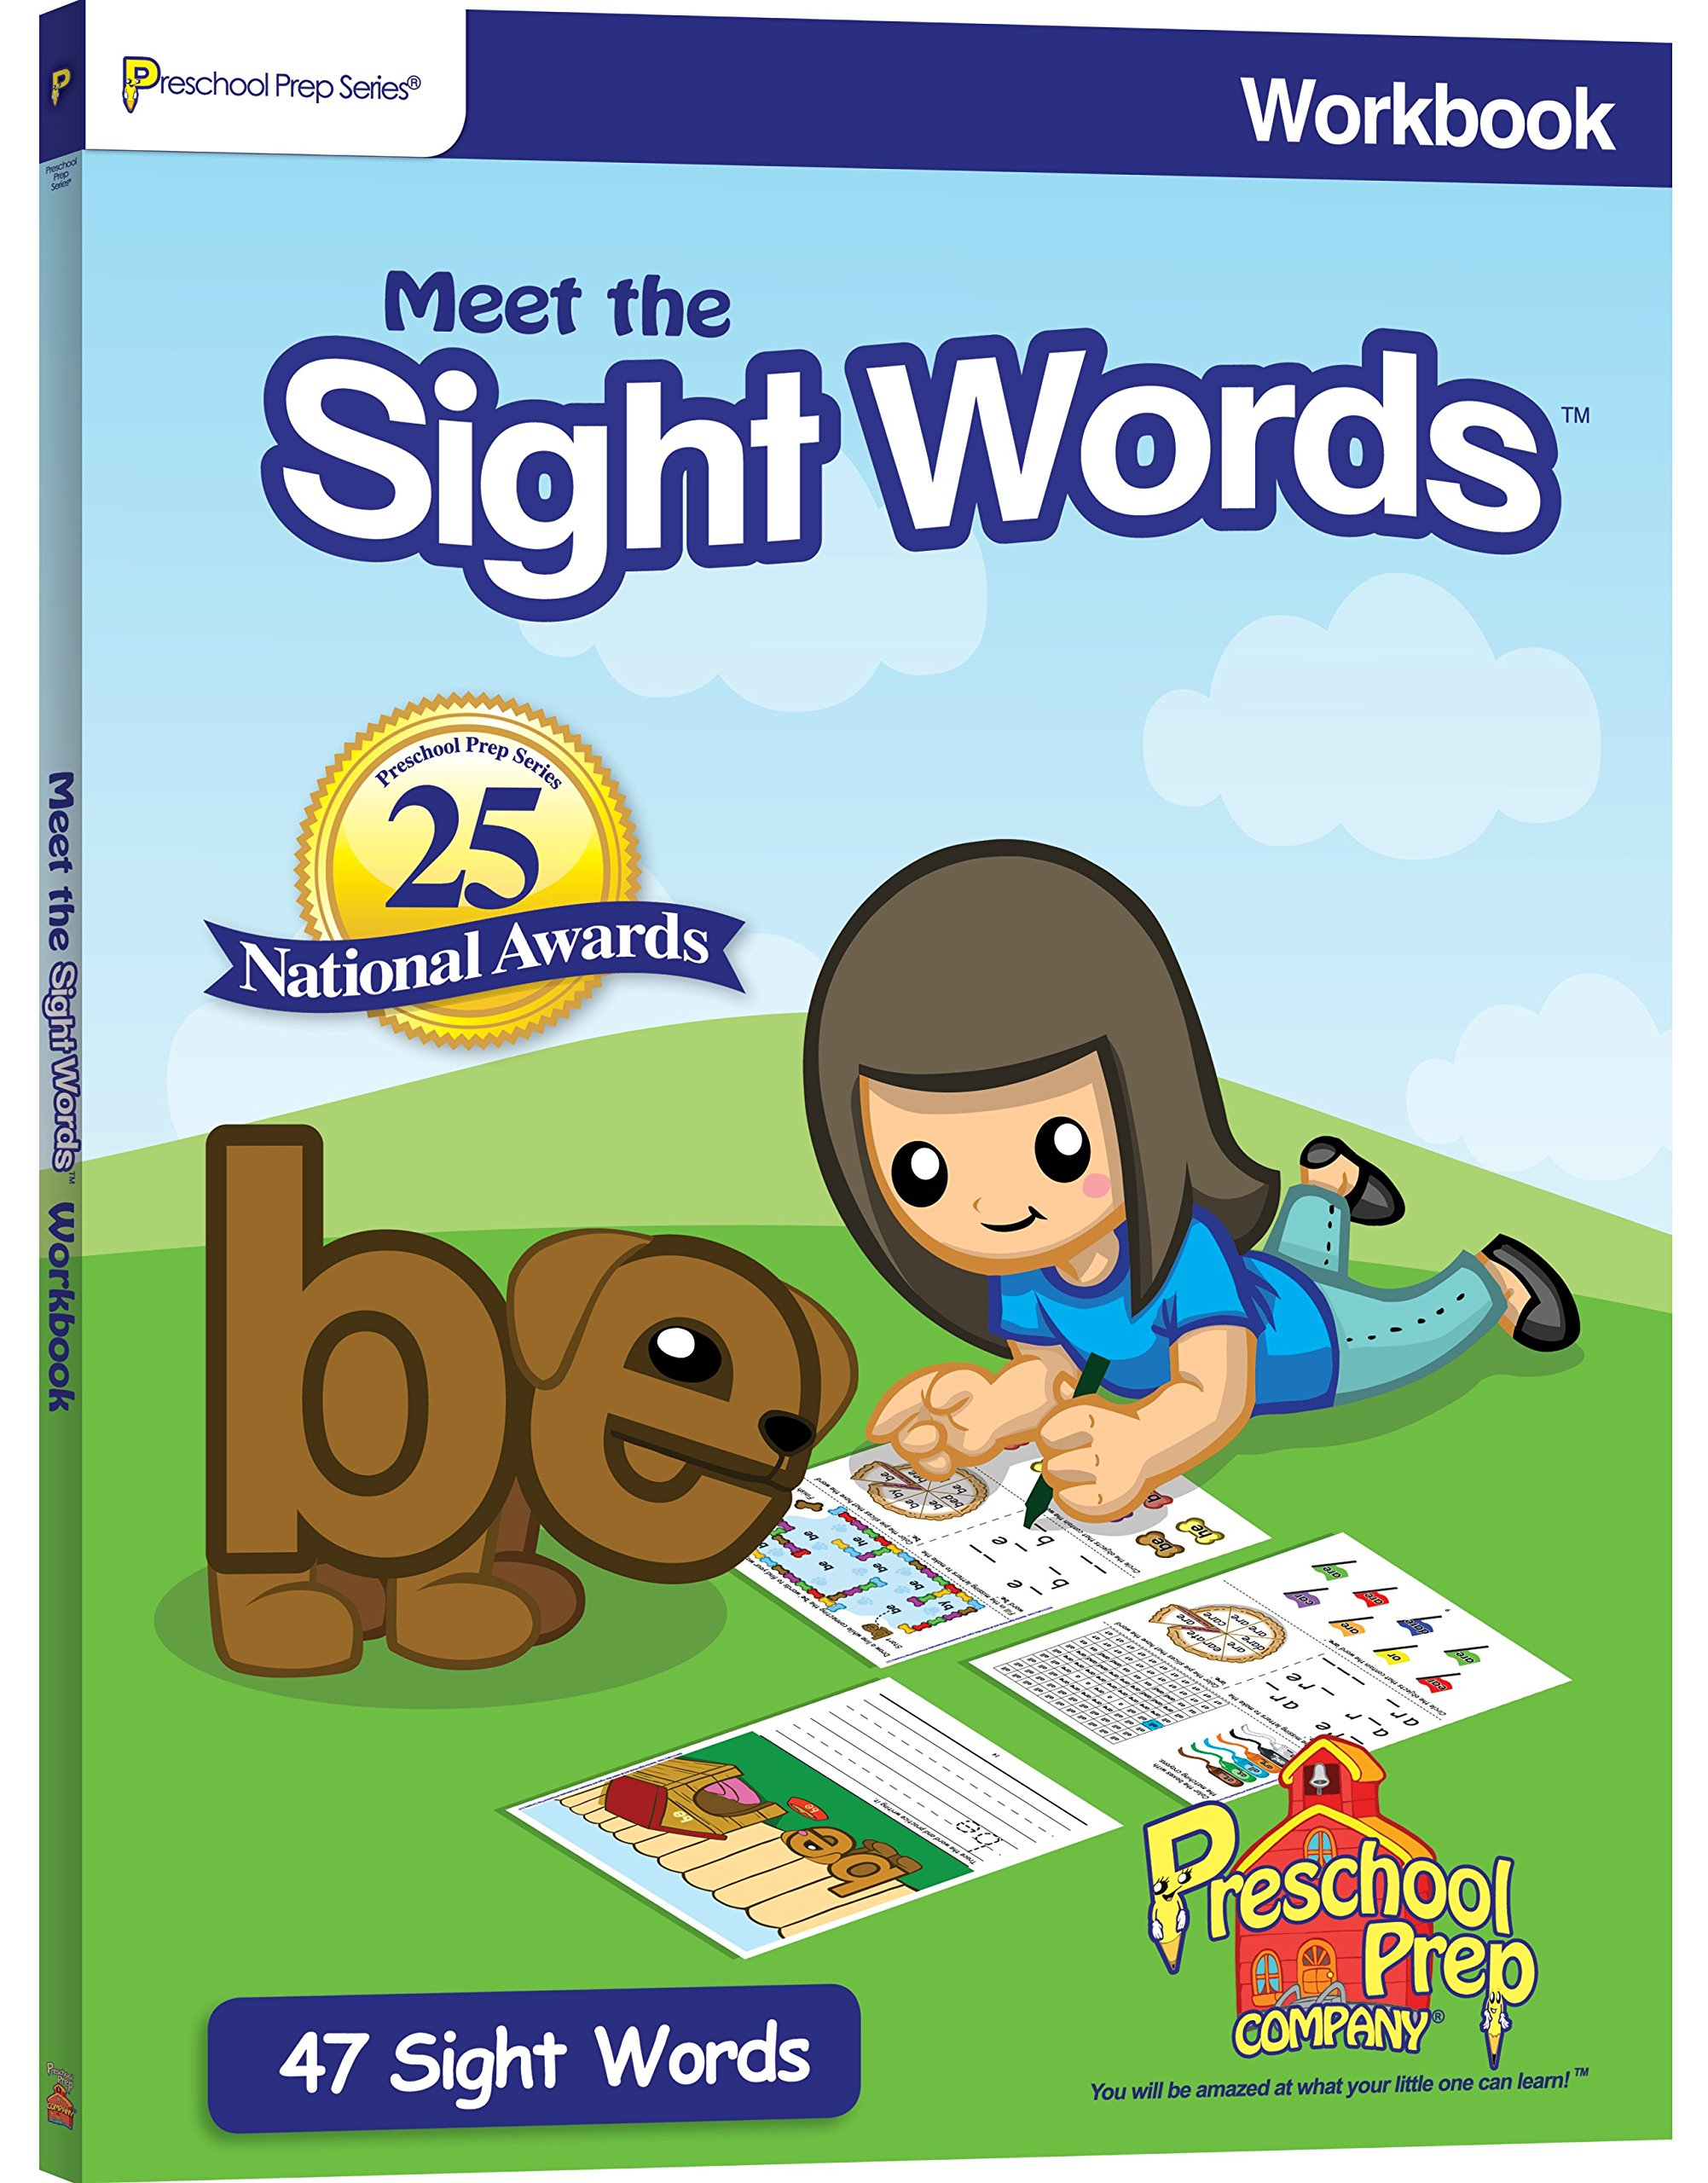 Meet the Sight Words Workbook: Kathy Oxley, Preschool Prep Company ...